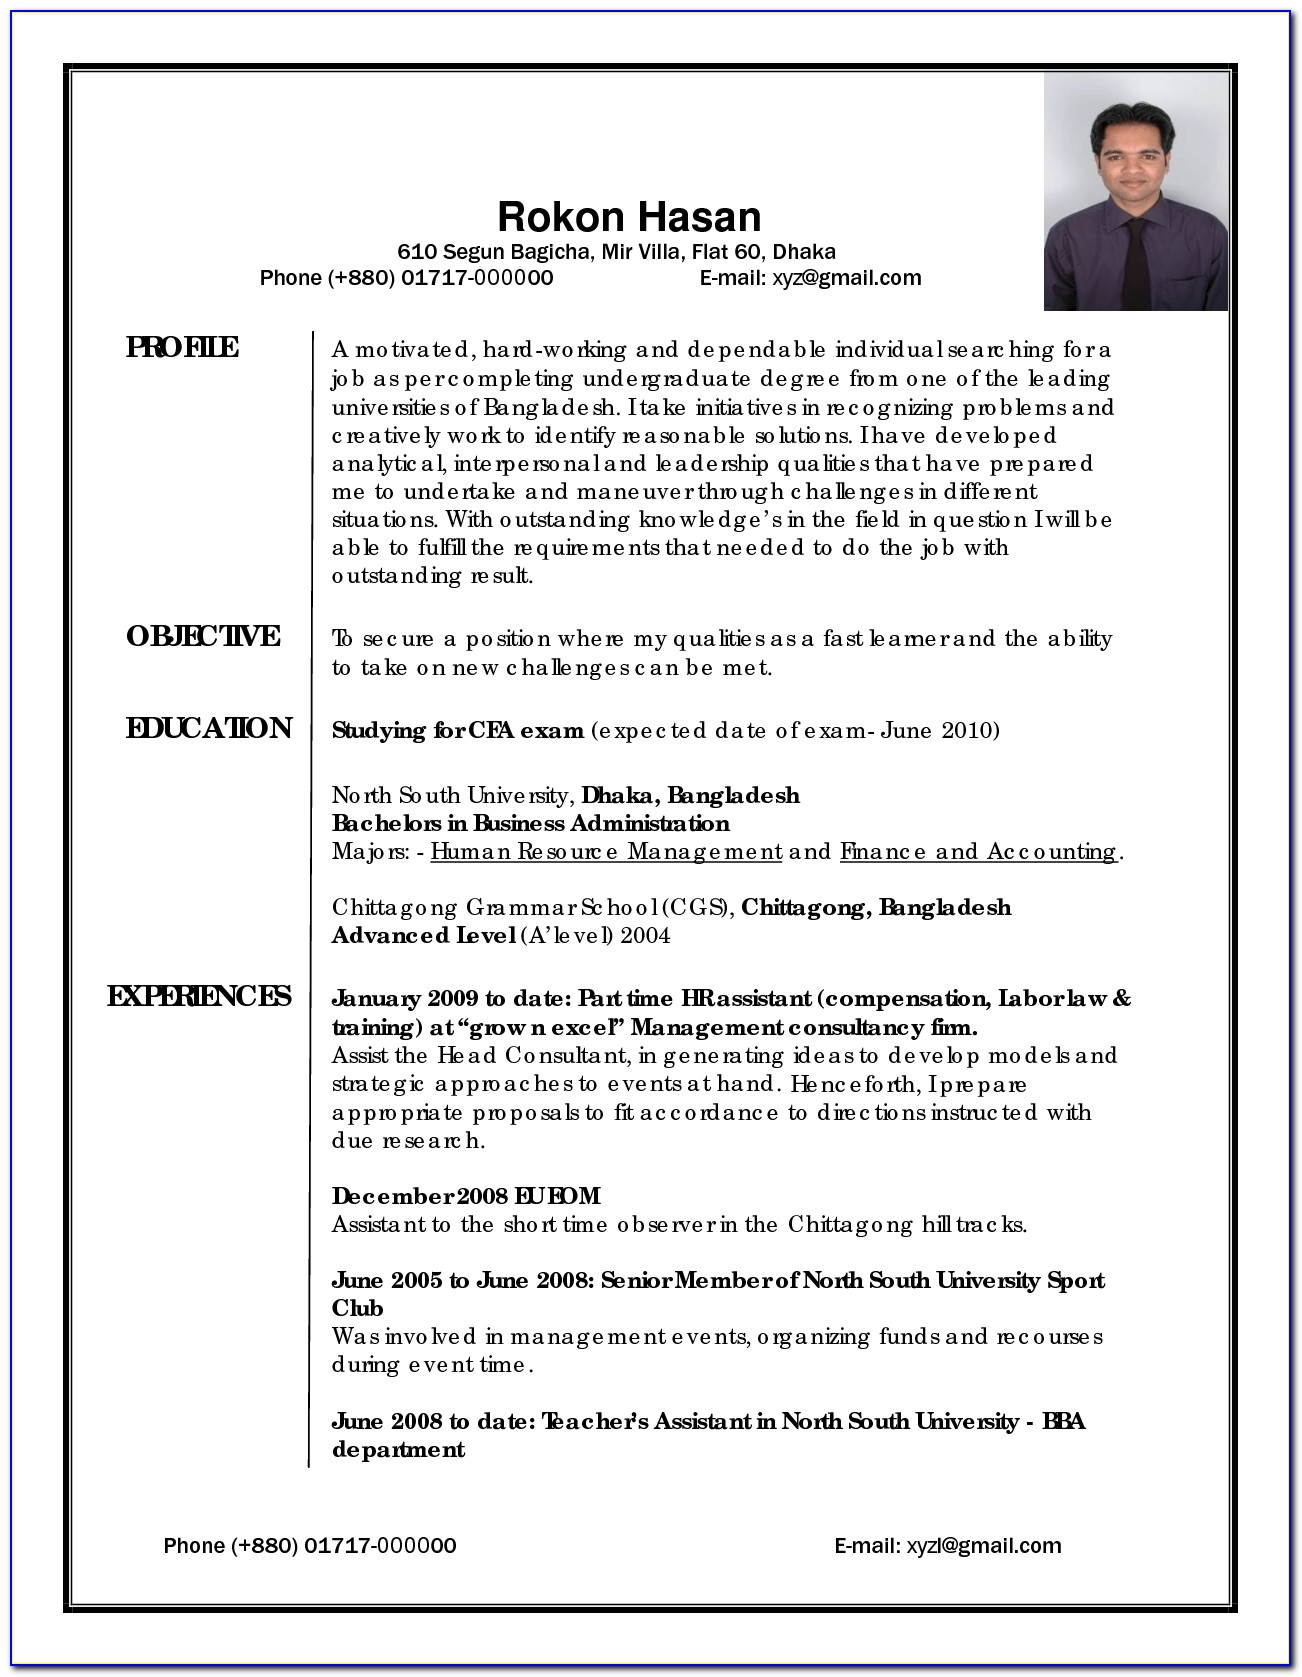 Download Professional Resume Writing Service Easy Sample Essay Inside 87 Amazing Sample Professional Resume